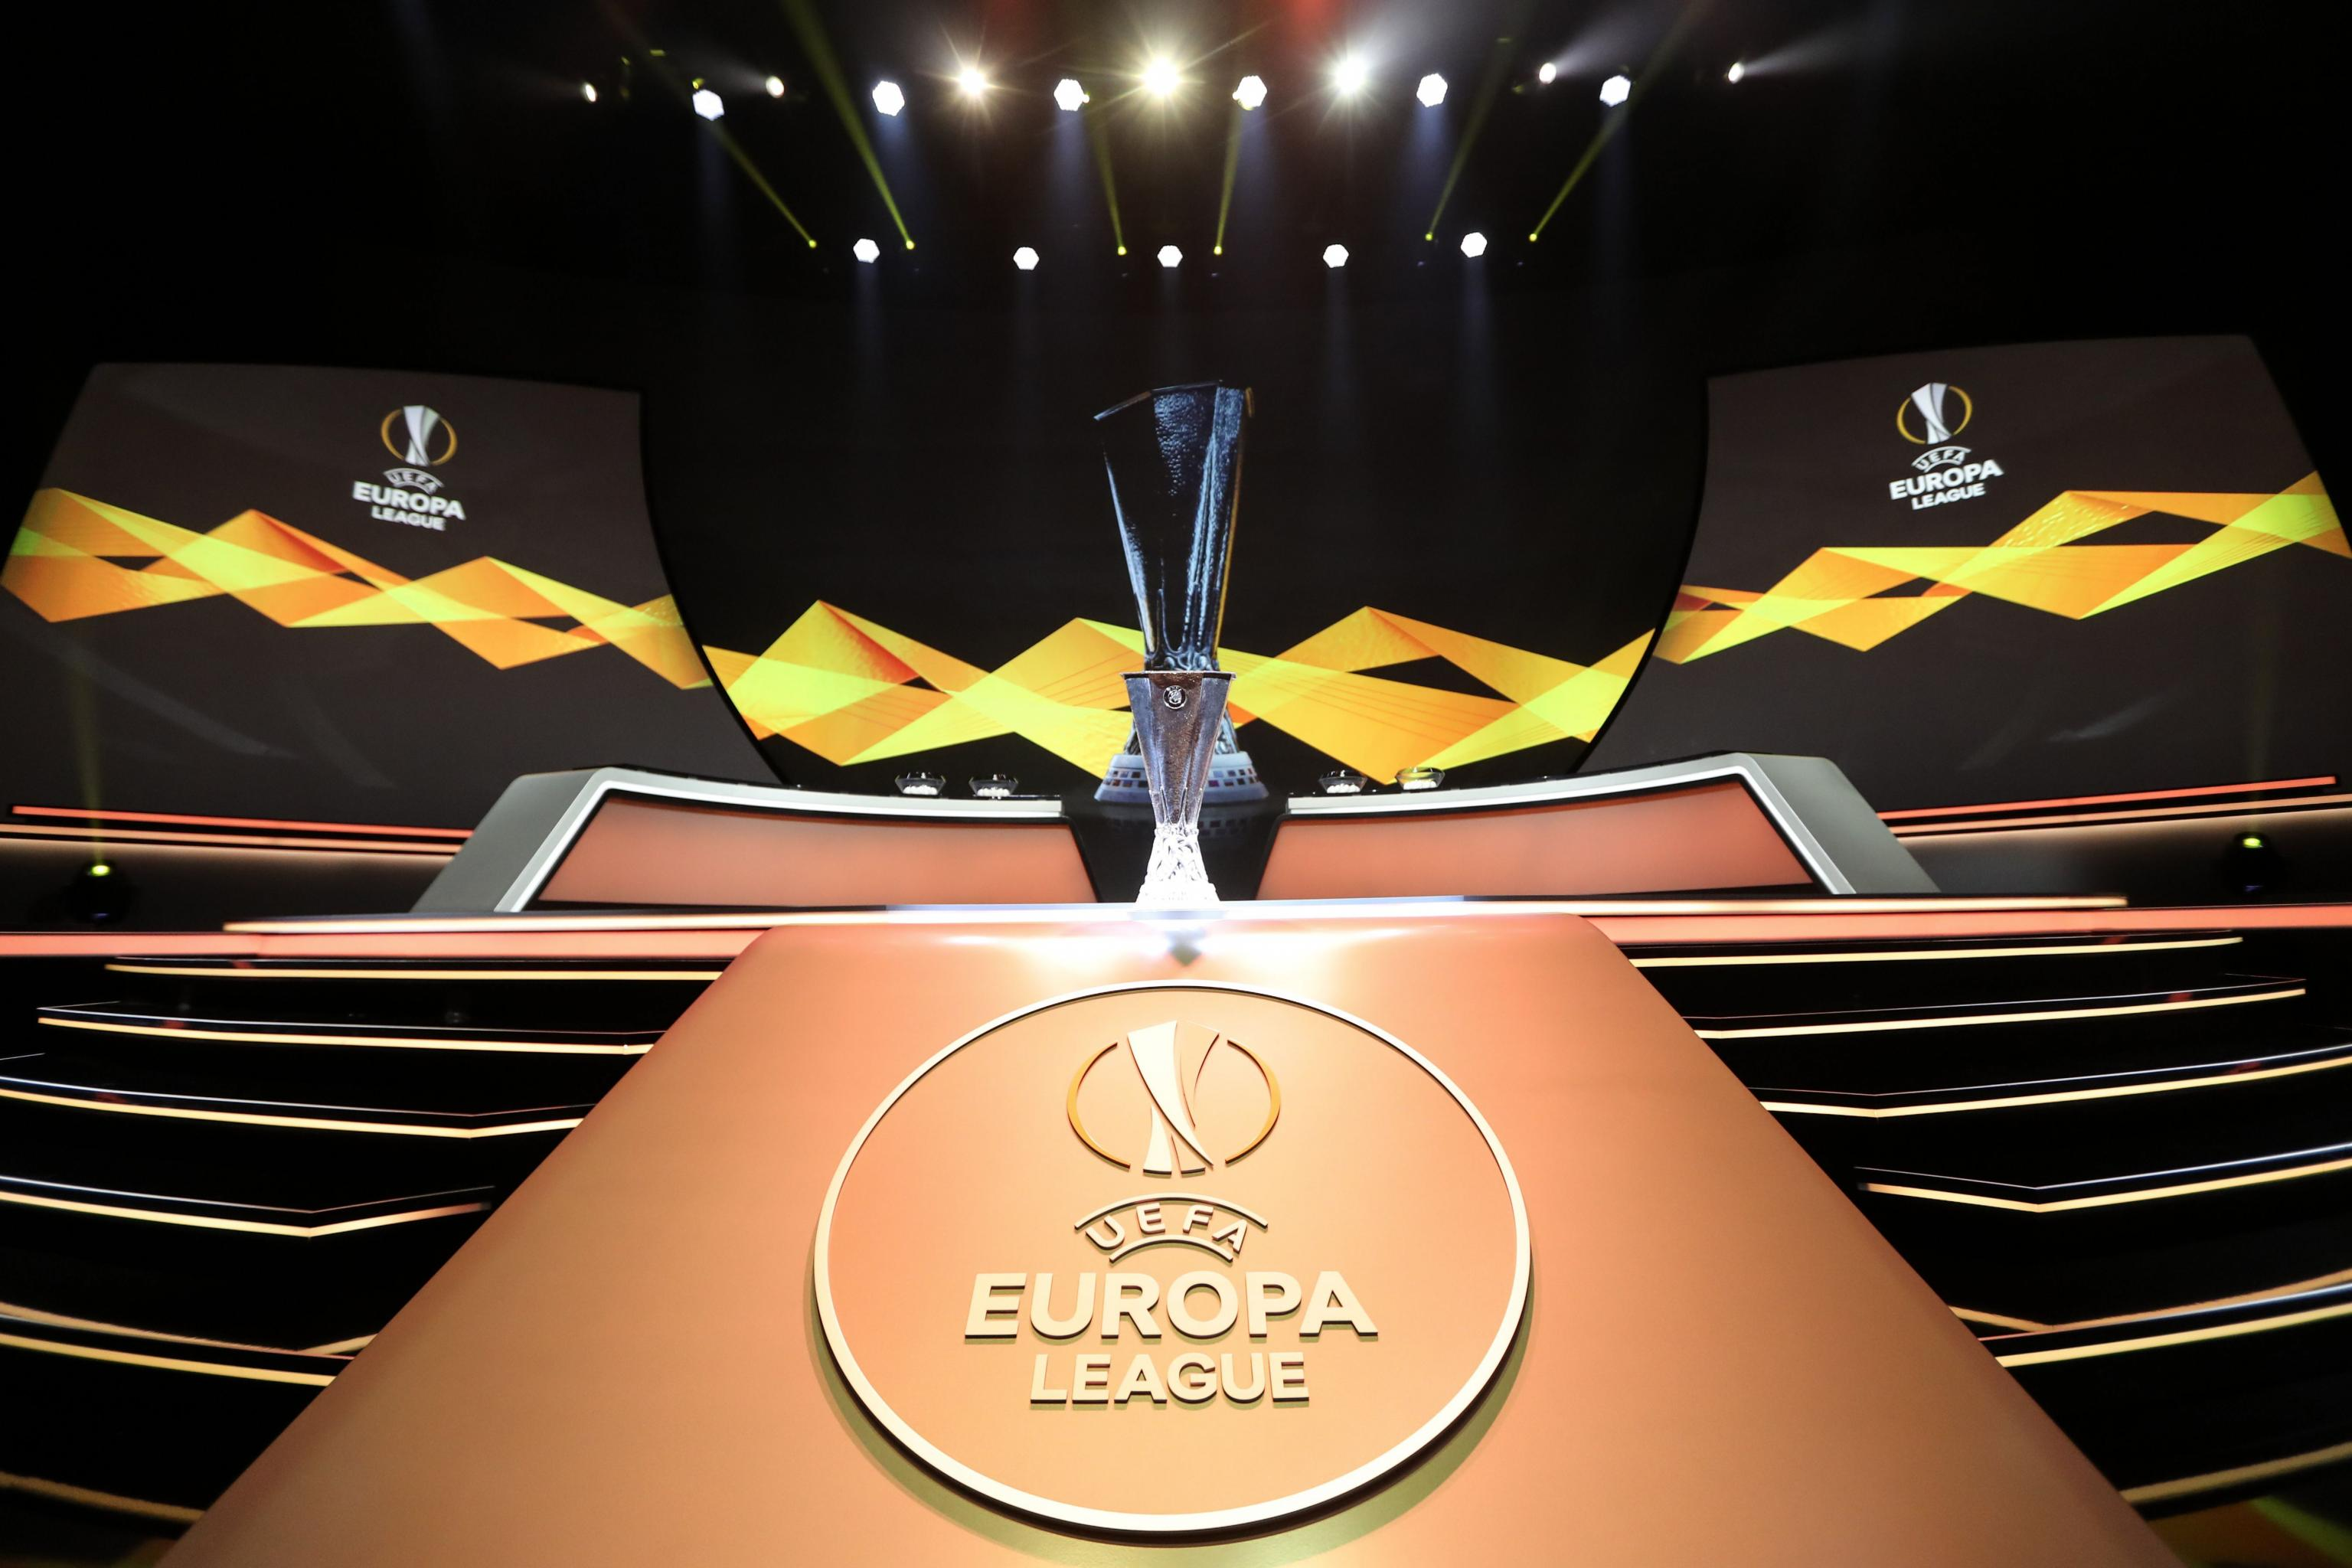 Europa League Draw 2019 20 Schedule Of Dates For Group